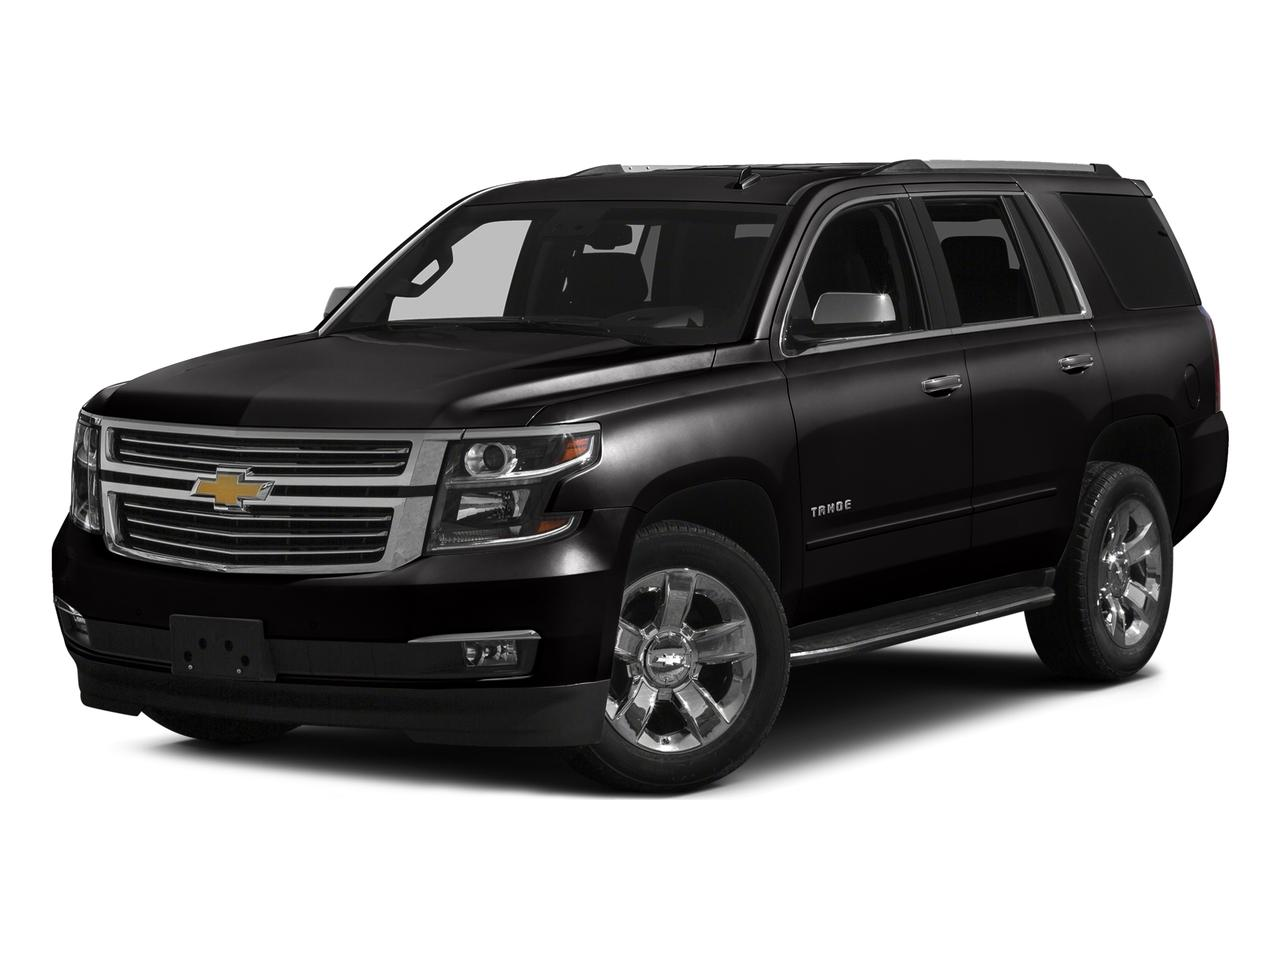 2017 Chevrolet Tahoe Vehicle Photo in Cape May Court House, NJ 08210